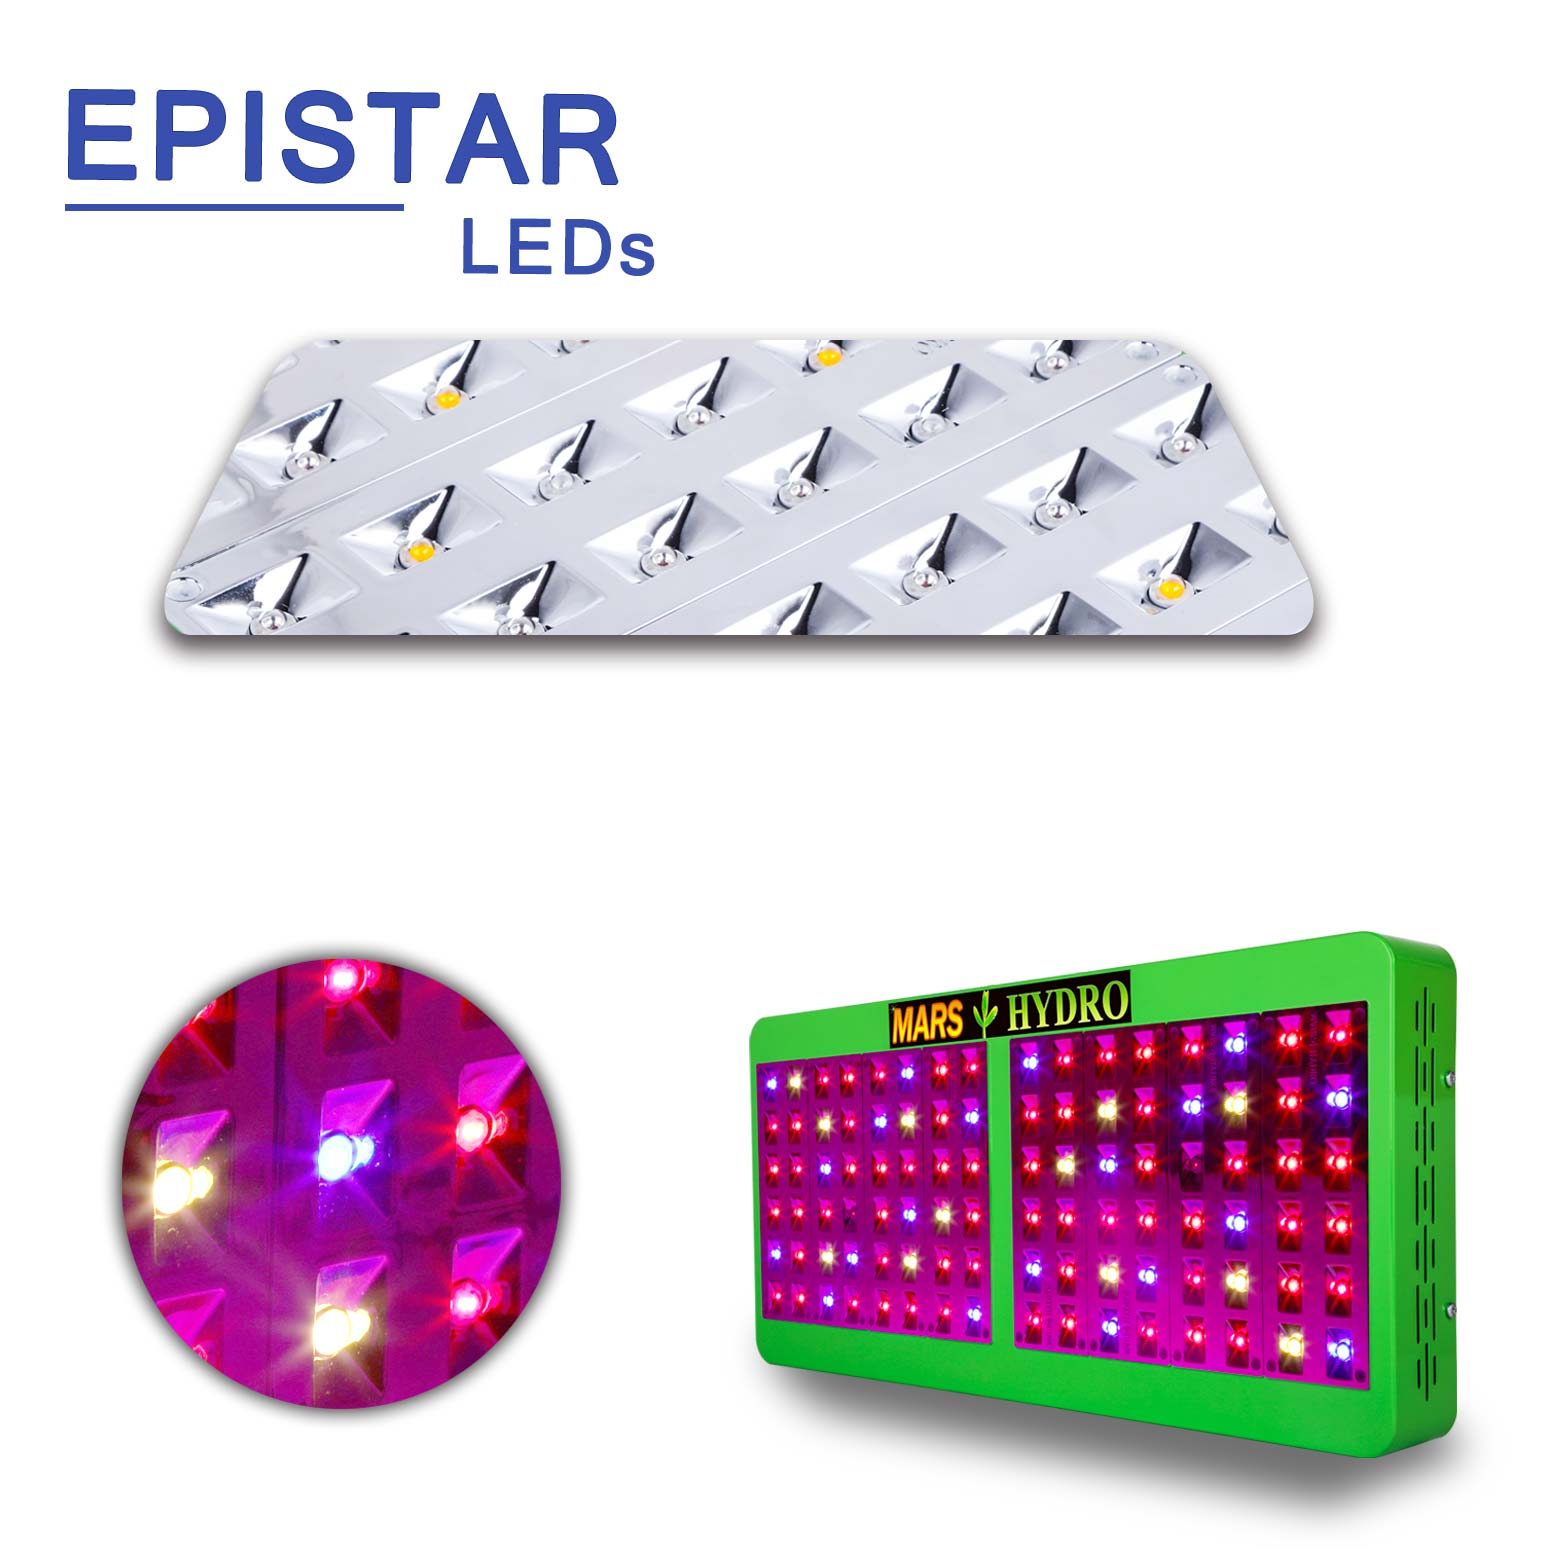 Free shipping hydroponic indoor Medical Plants ETL / CE Mars Reflector veg/bloom switch grow light